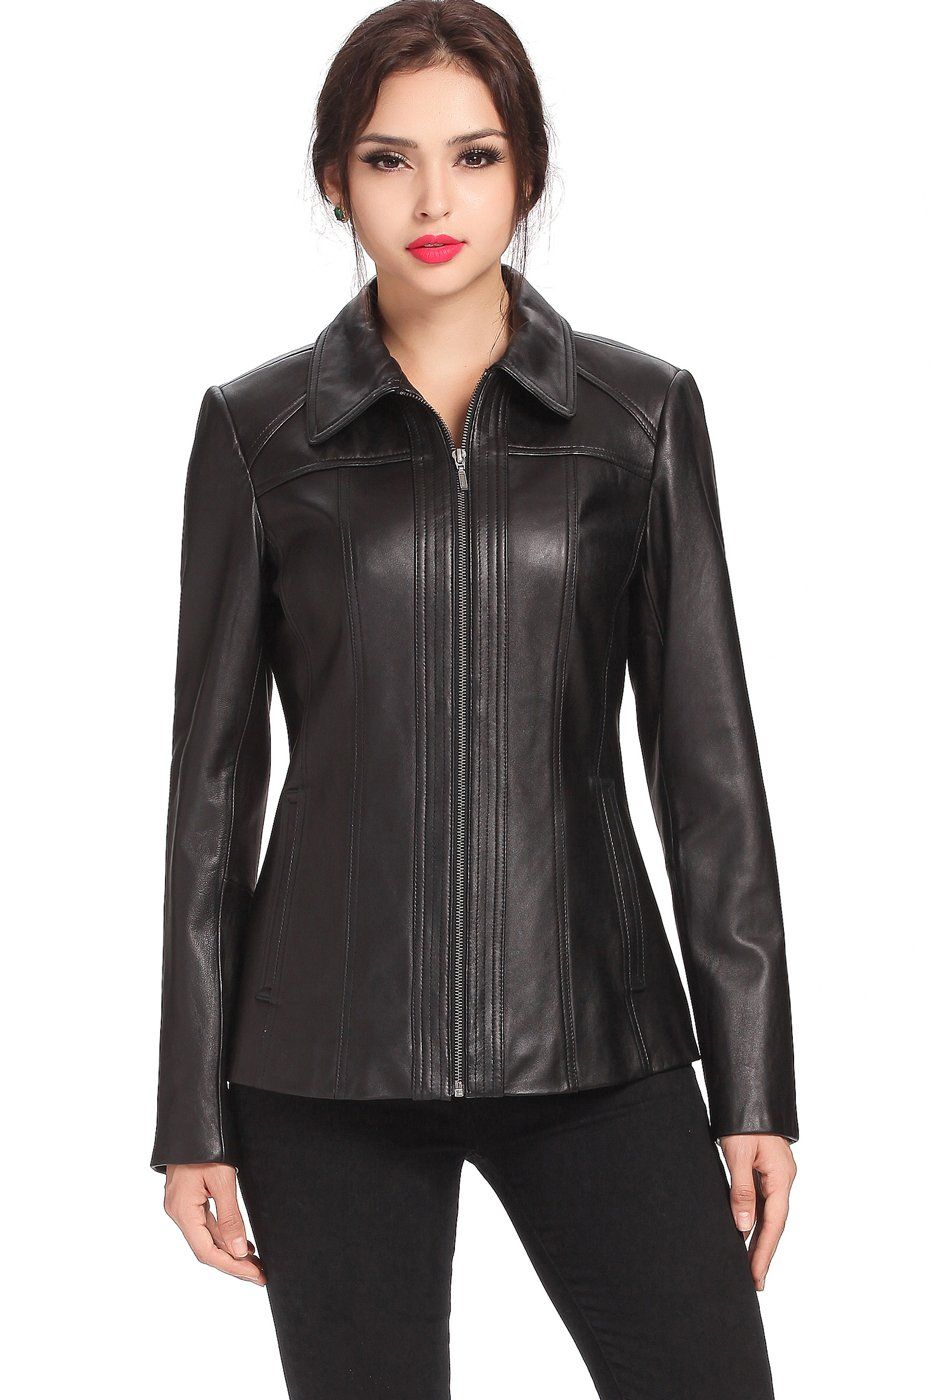 BGSD Womens Ellen Zip Front New Zealand Lambskin Leather